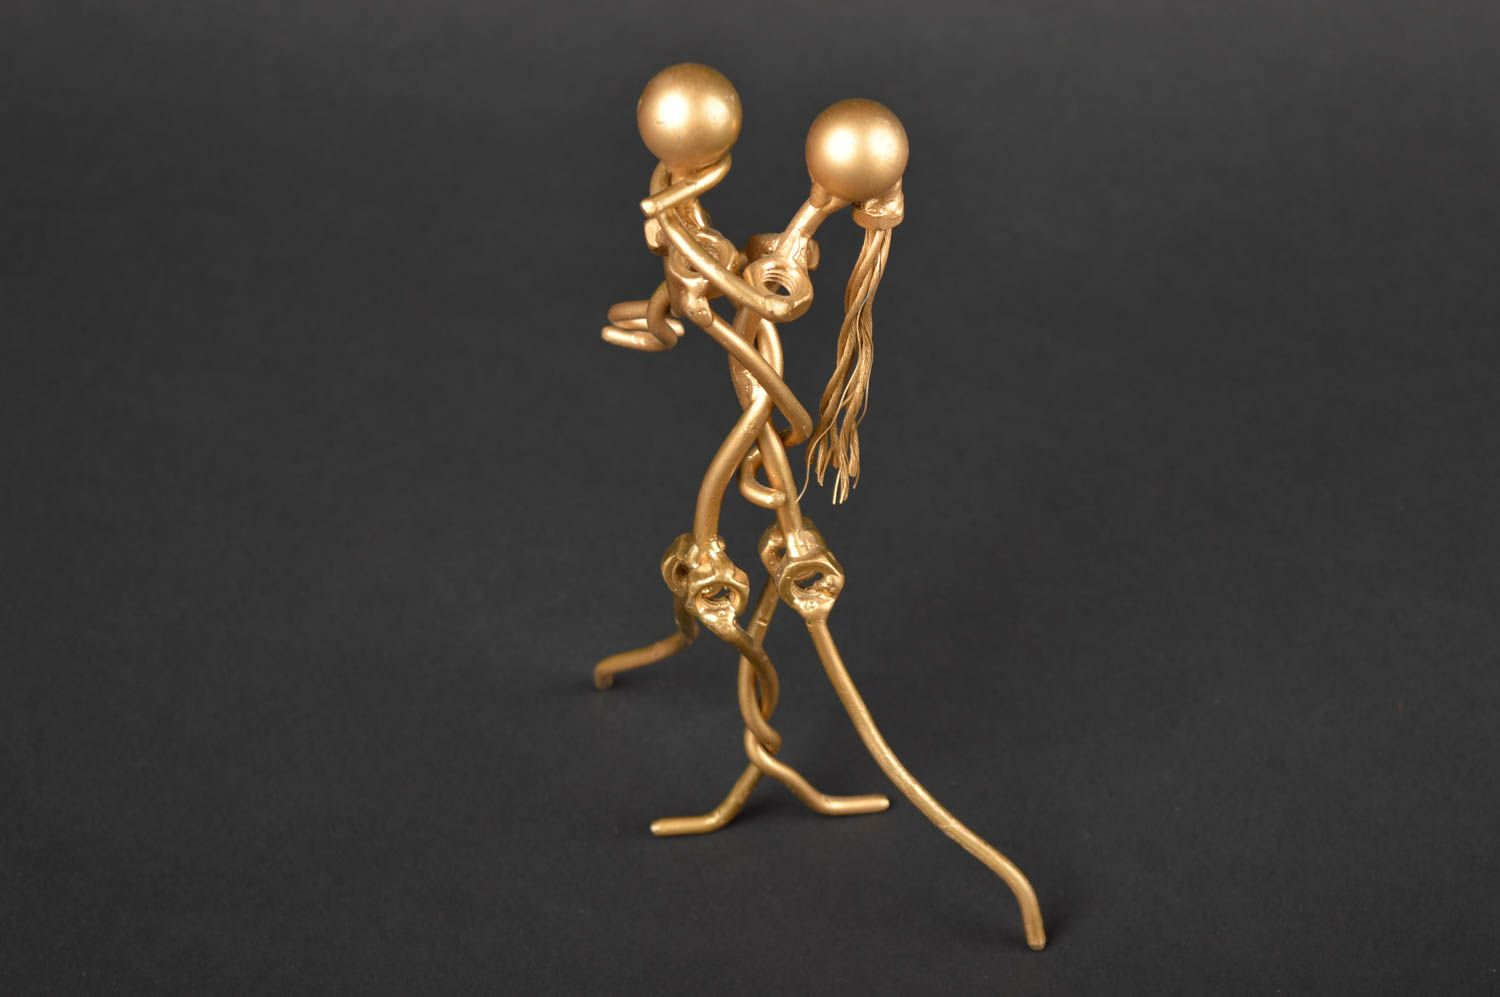 Handmade metal figurines of people for decorative use only housewarming gifts photo 1